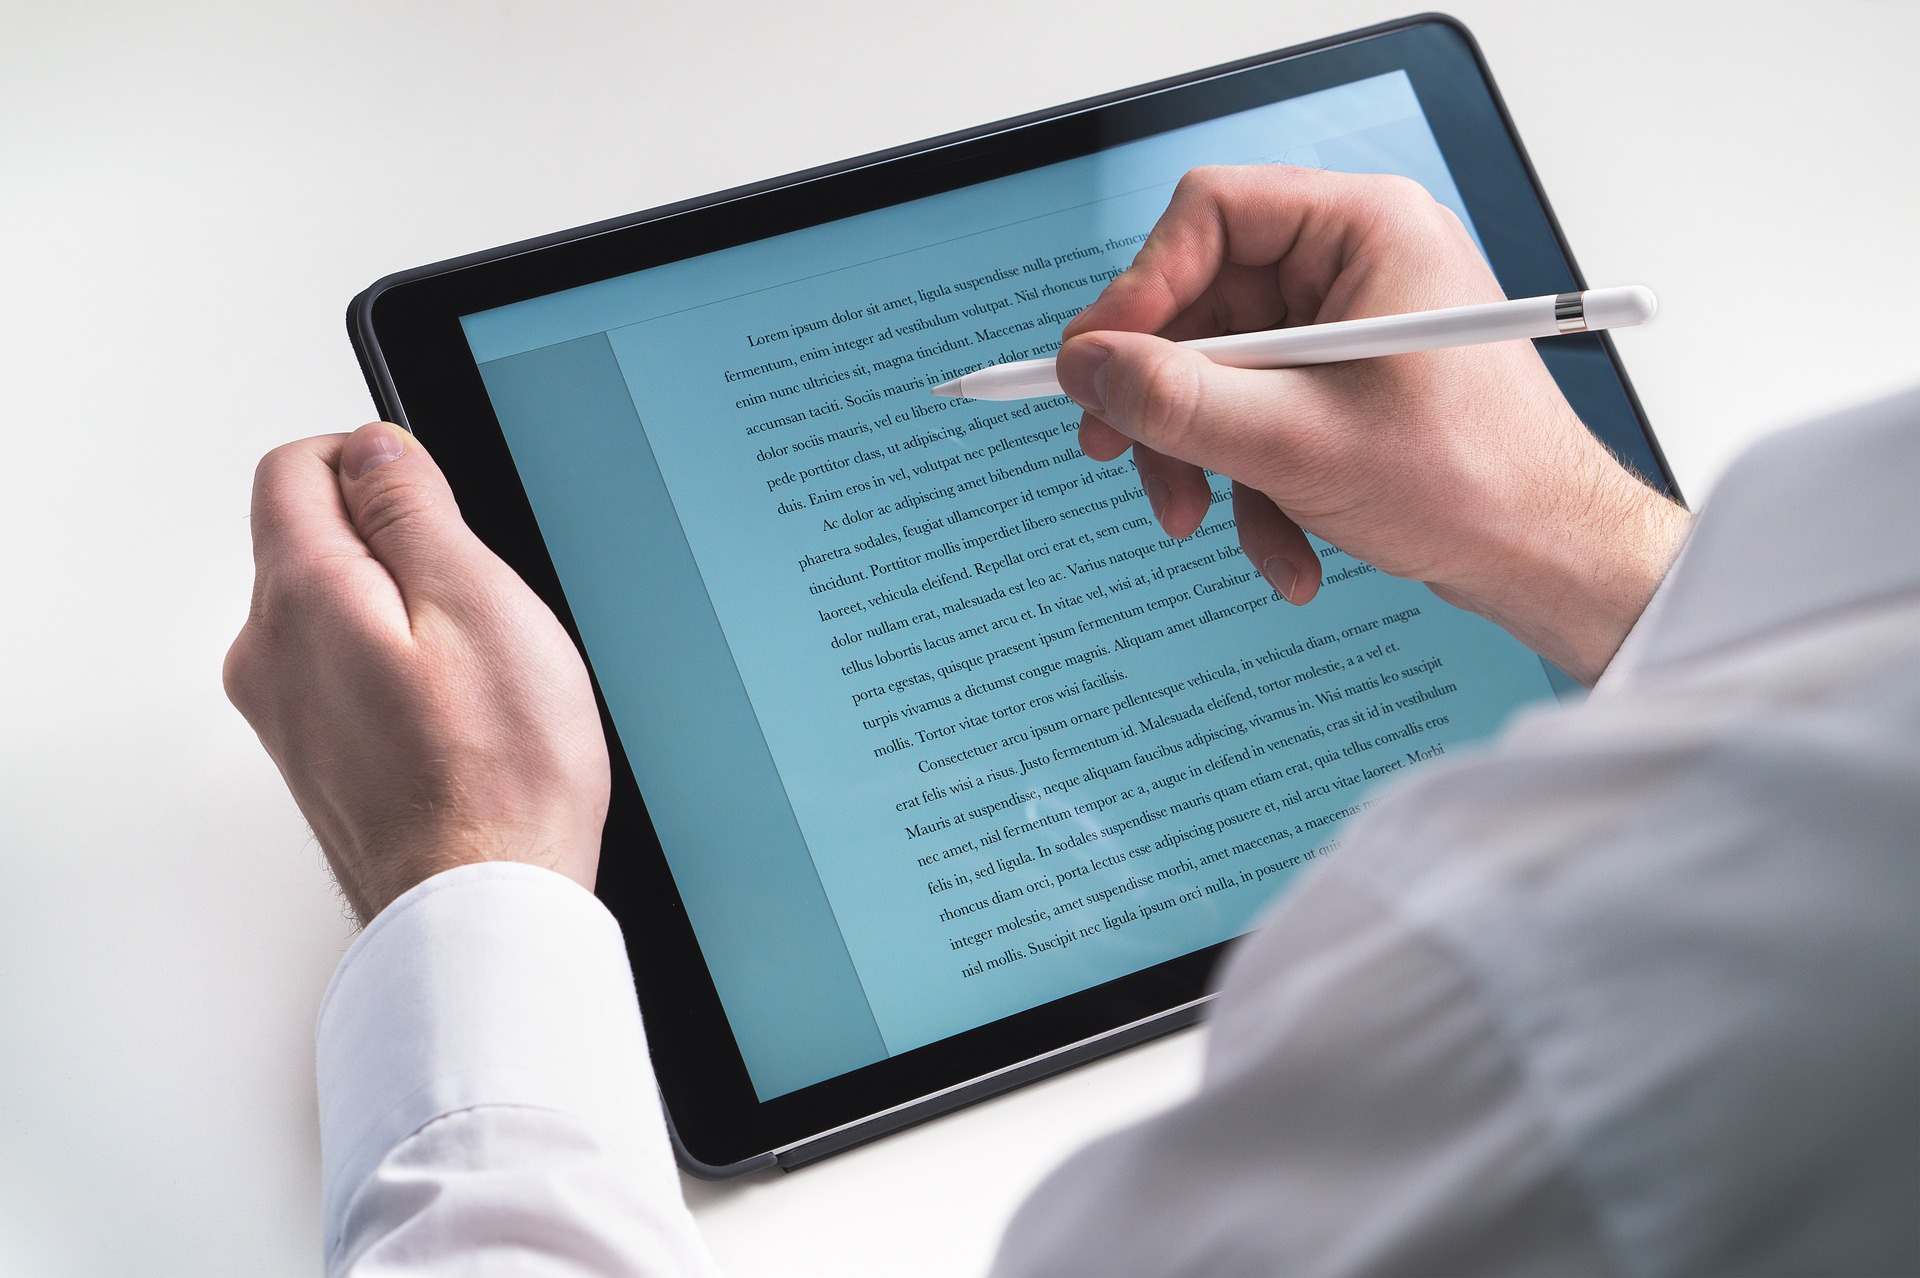 Man using tablet to write over what is already typed out on the screen